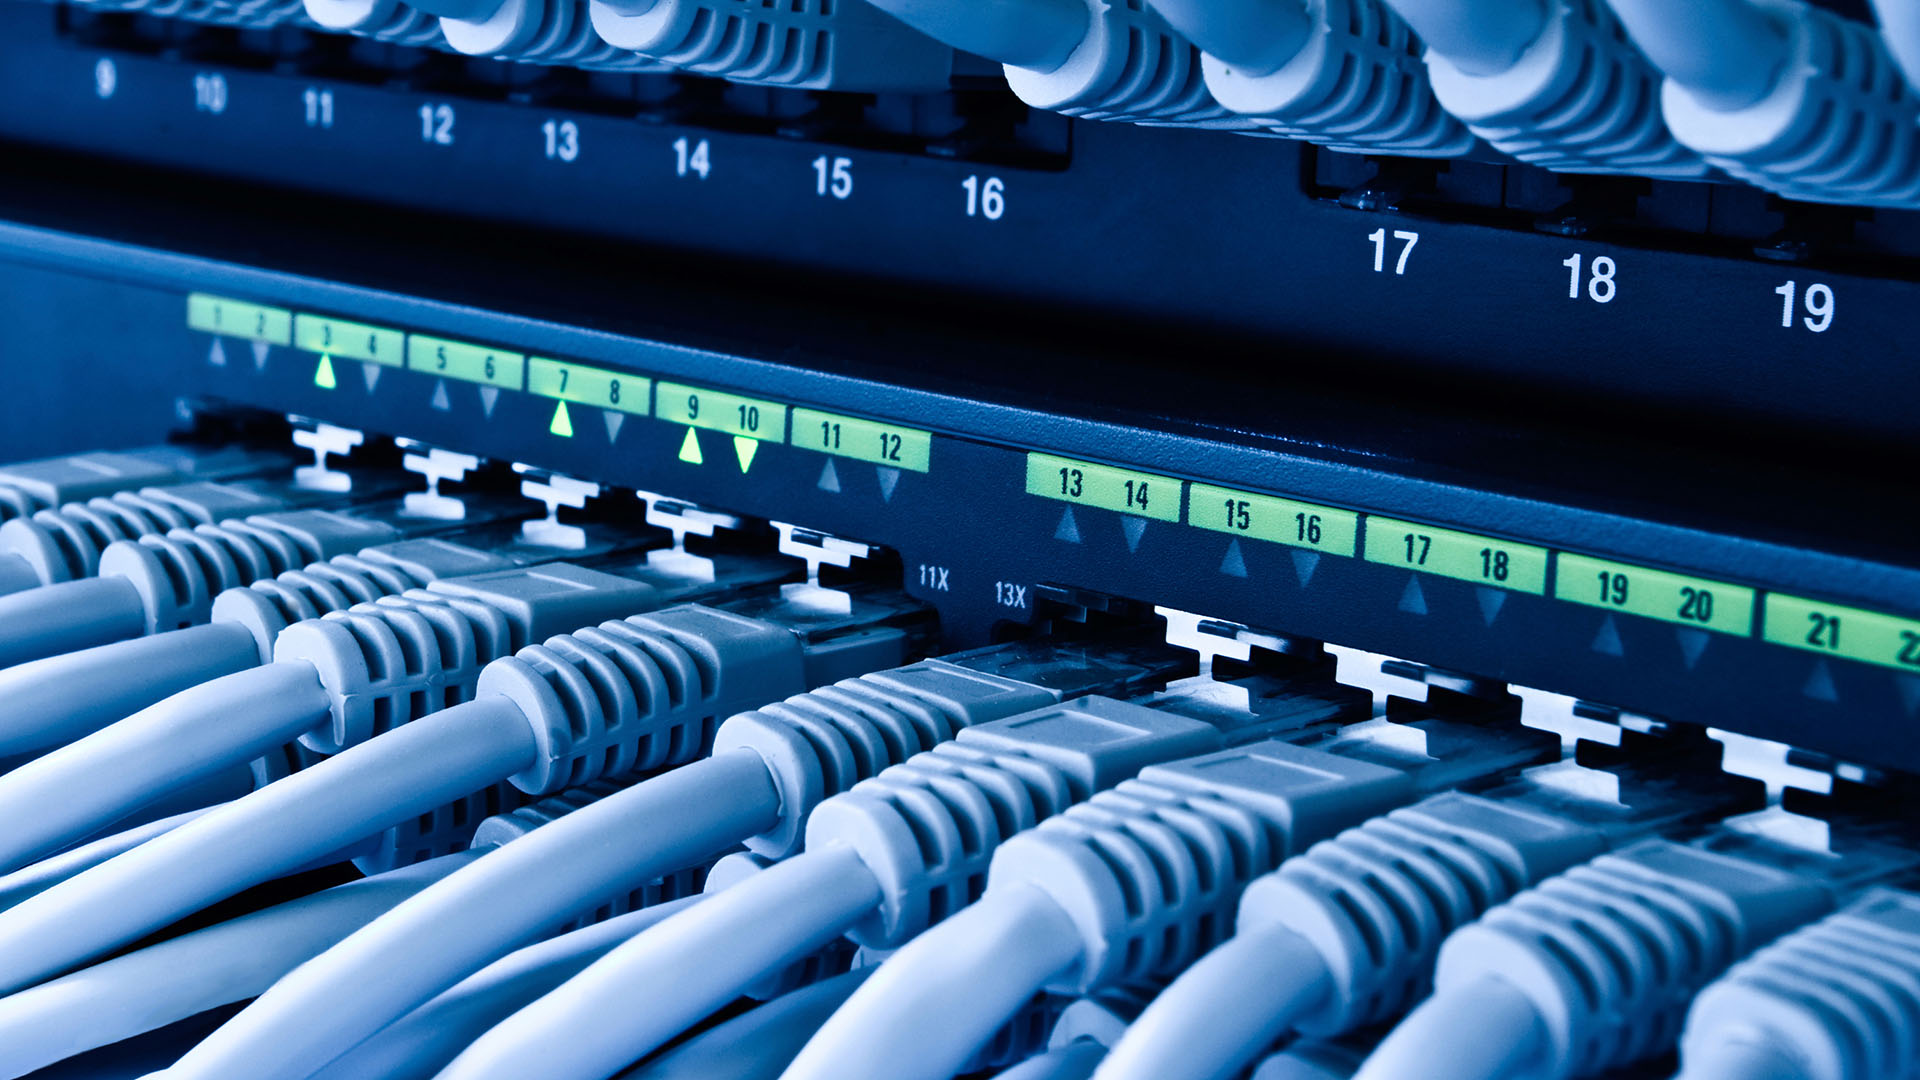 Salyersville Kentucky Preferred Voice & Data Network Cabling Contractor